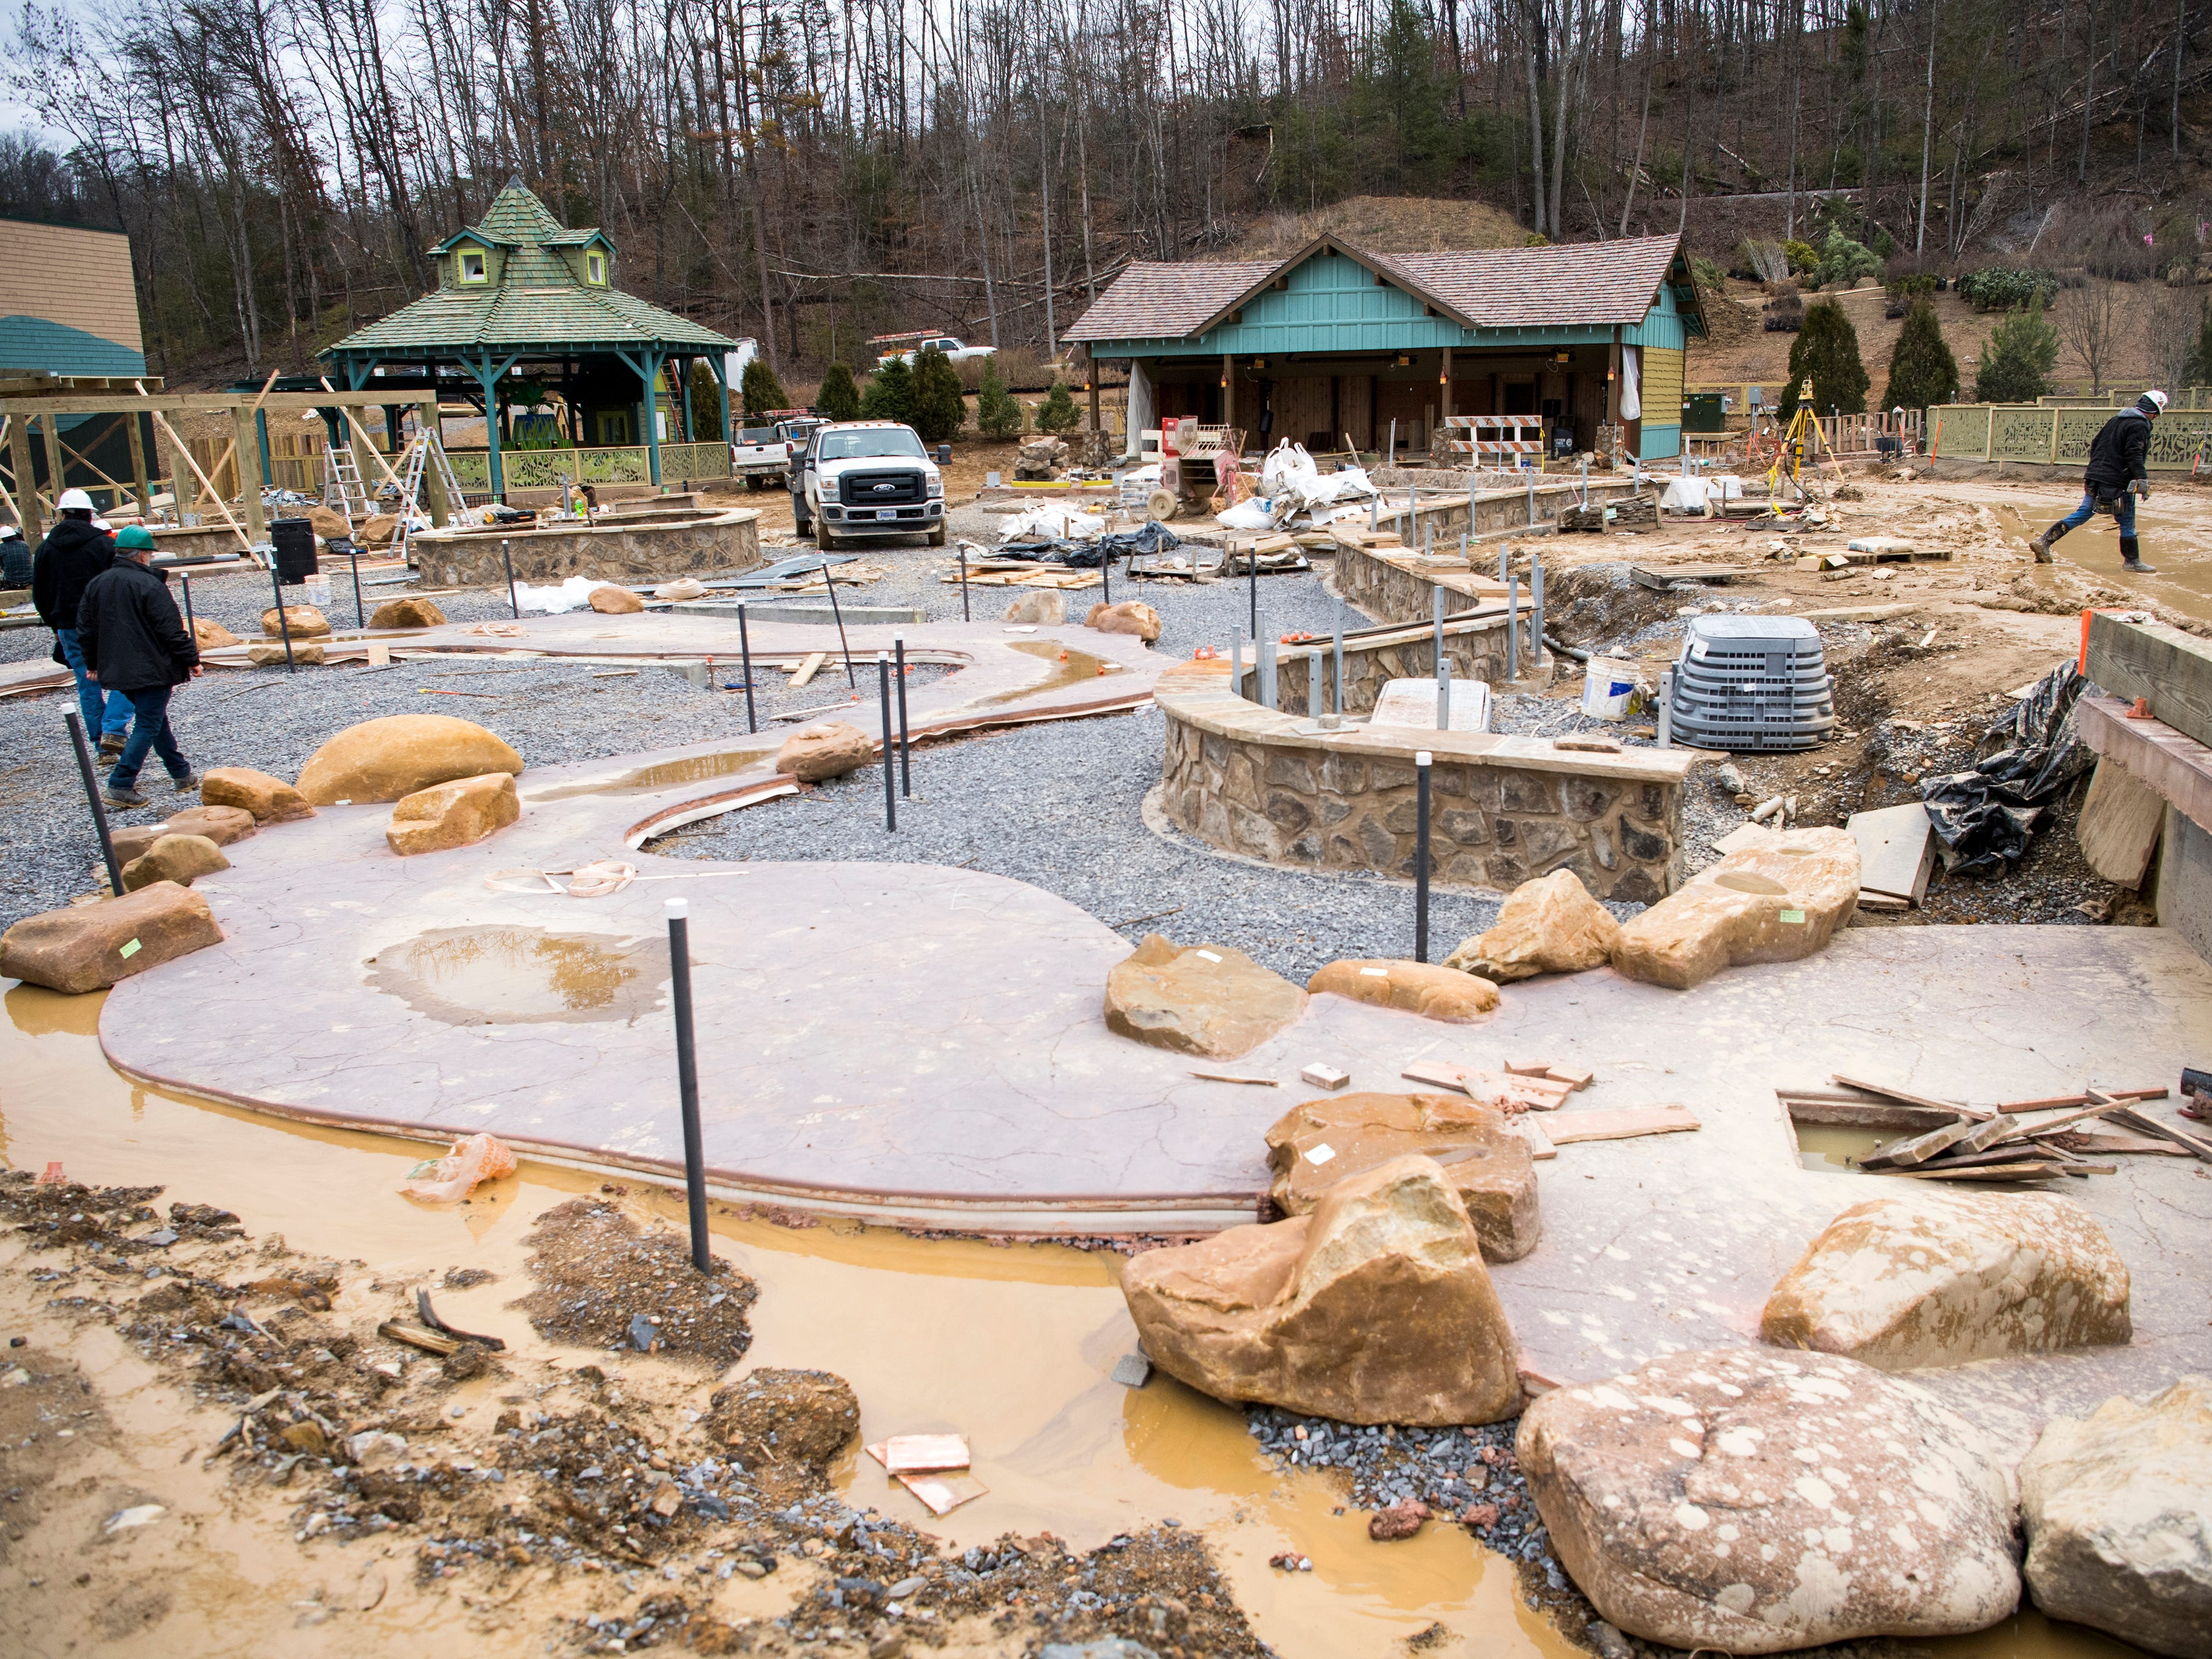 The Wildwood Creek area in Dollywood's new Wildwood Grove area of the park on Tuesday, February 19, 2019.